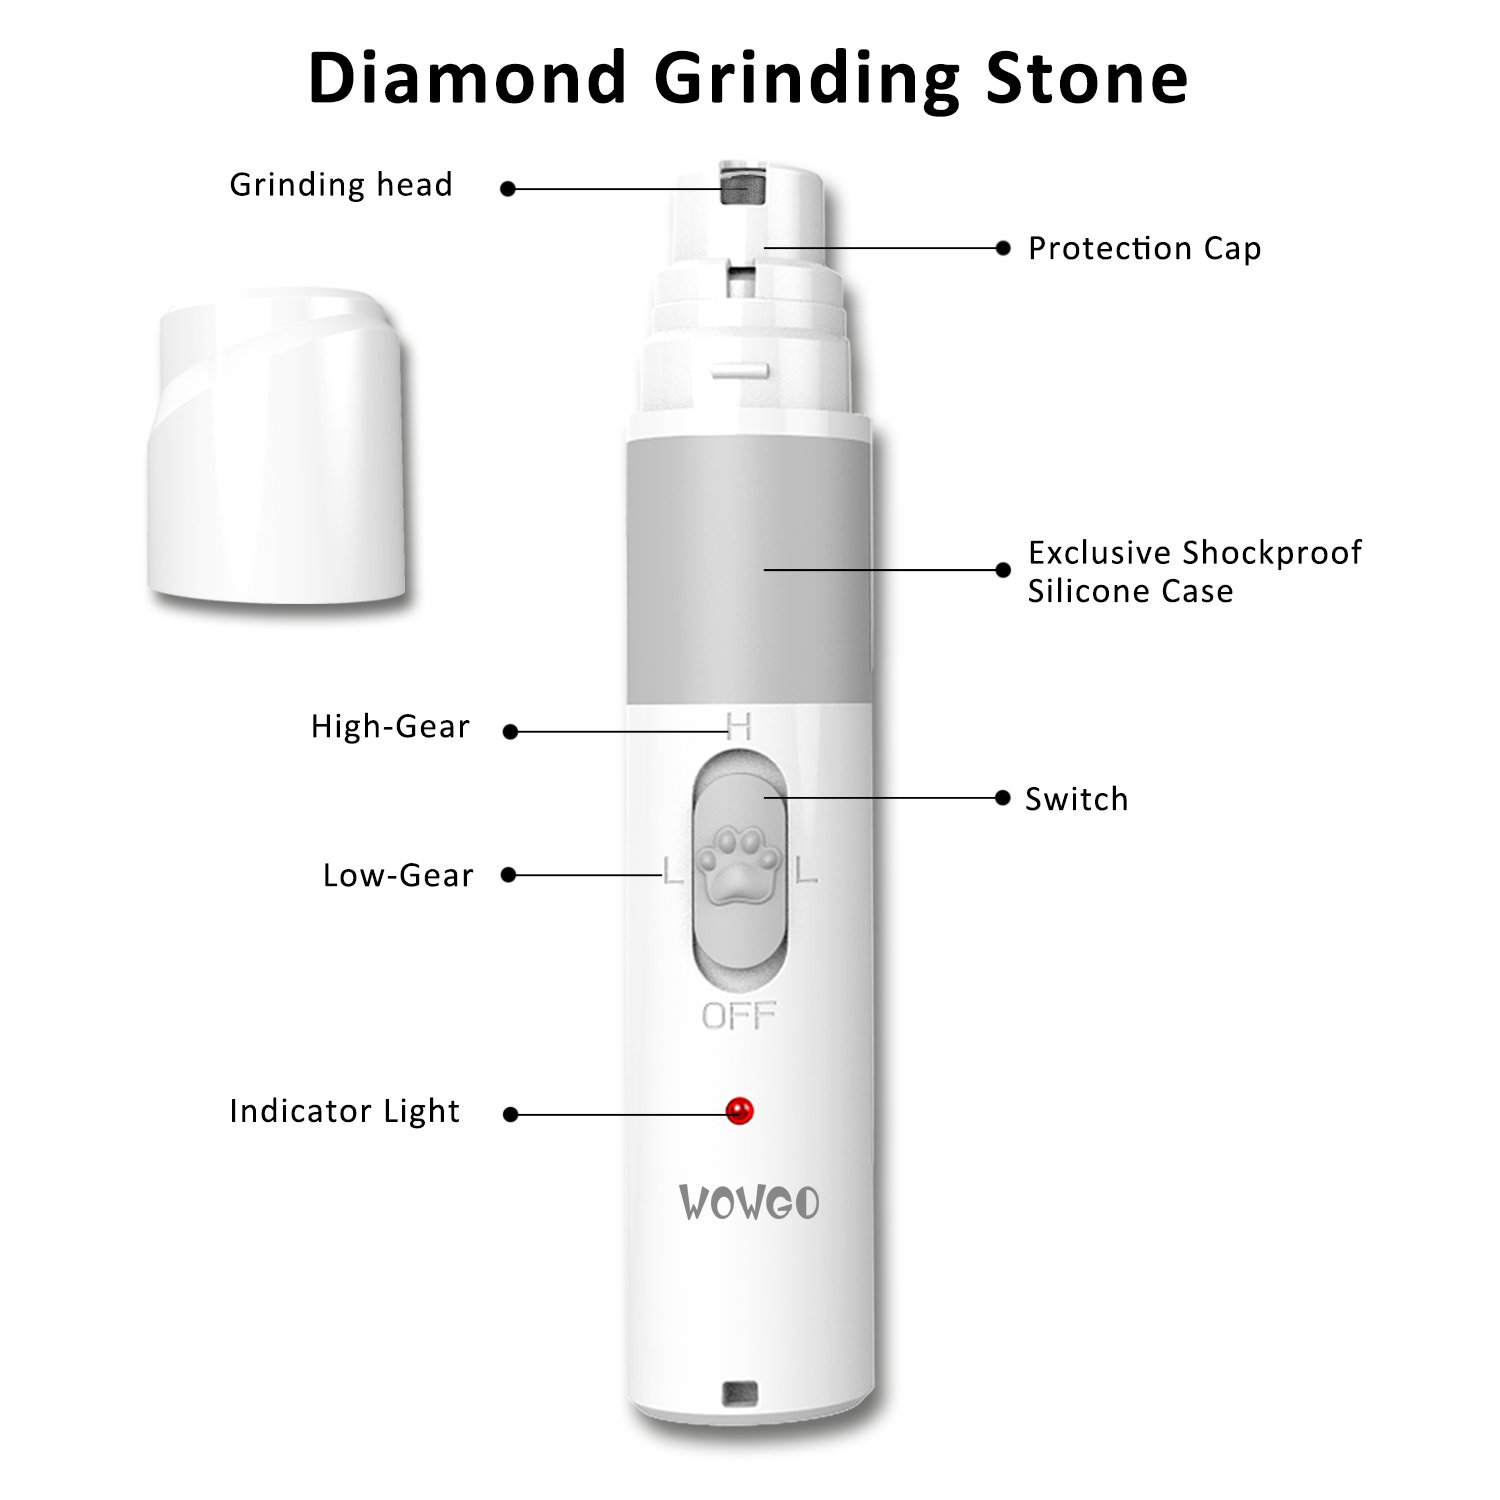 Pet Nail Grinder, WOWGO Rechargeable Electric Gentle Paws Nail Grinder Trimmer Clipper with USB Charging Cable for Dogs Cats Hamsters, Rabbits,Birds etc